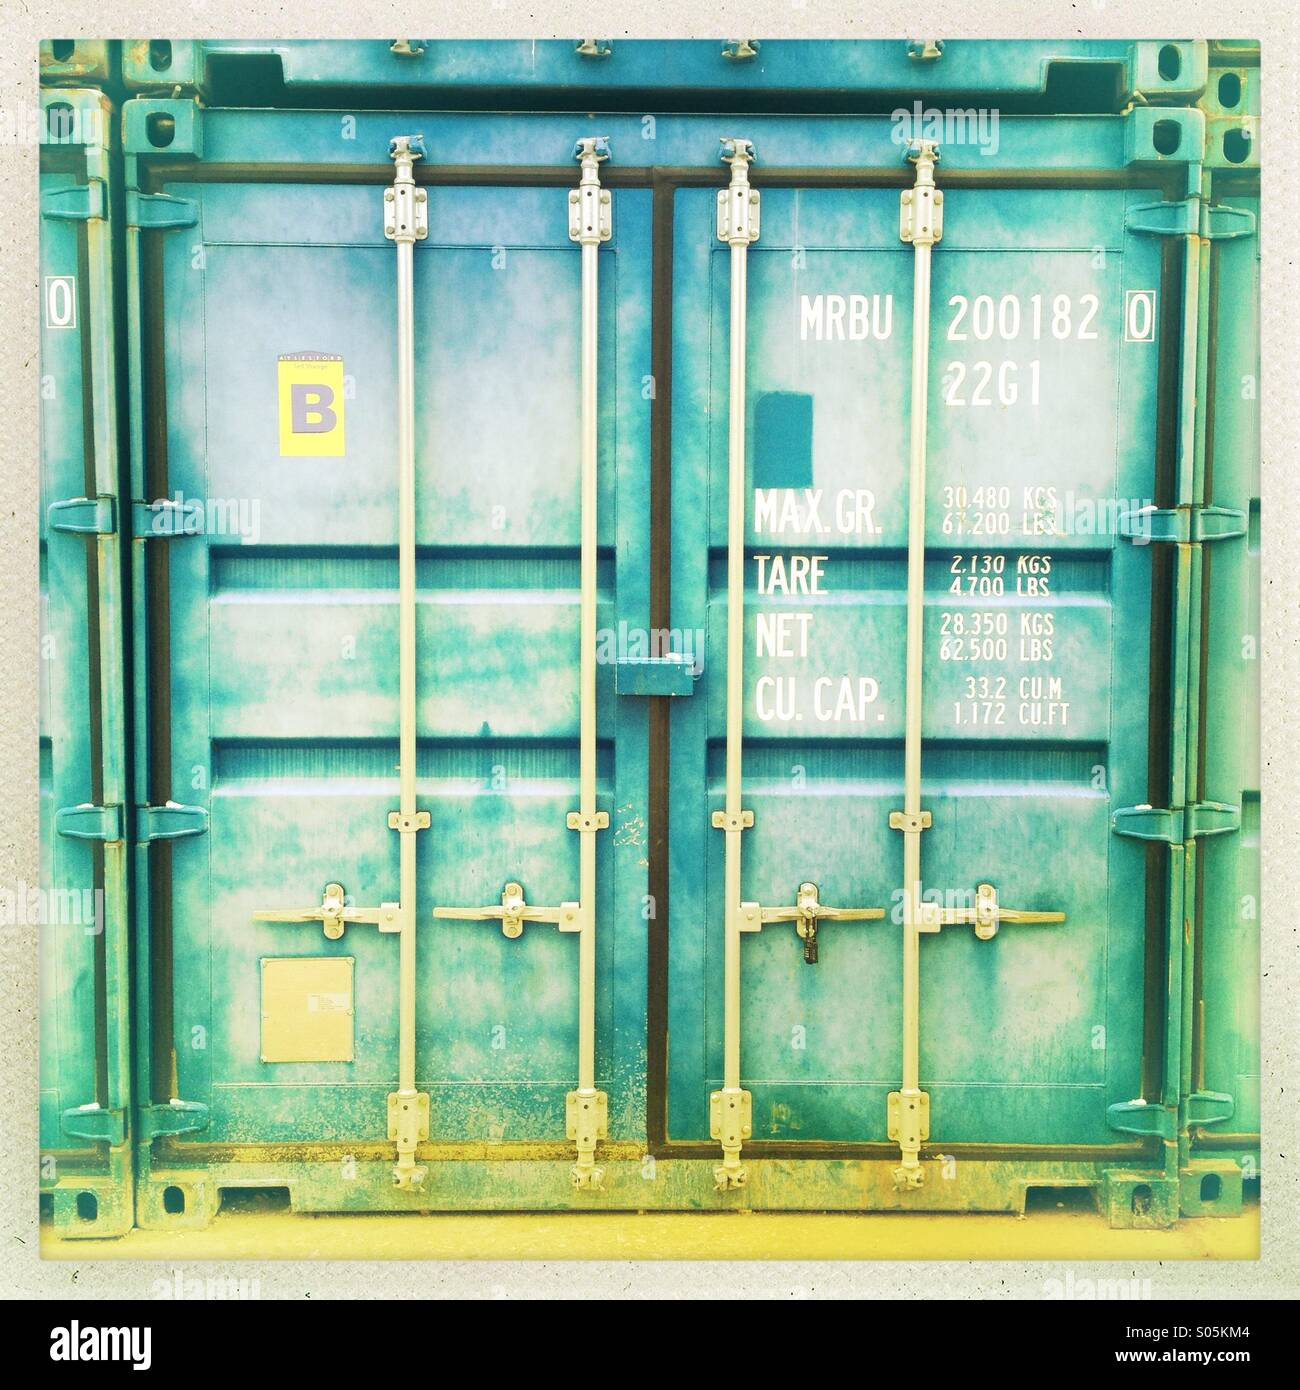 Shipping container doors  sc 1 st  Alamy & Shipping container doors Stock Photo: 309911844 - Alamy